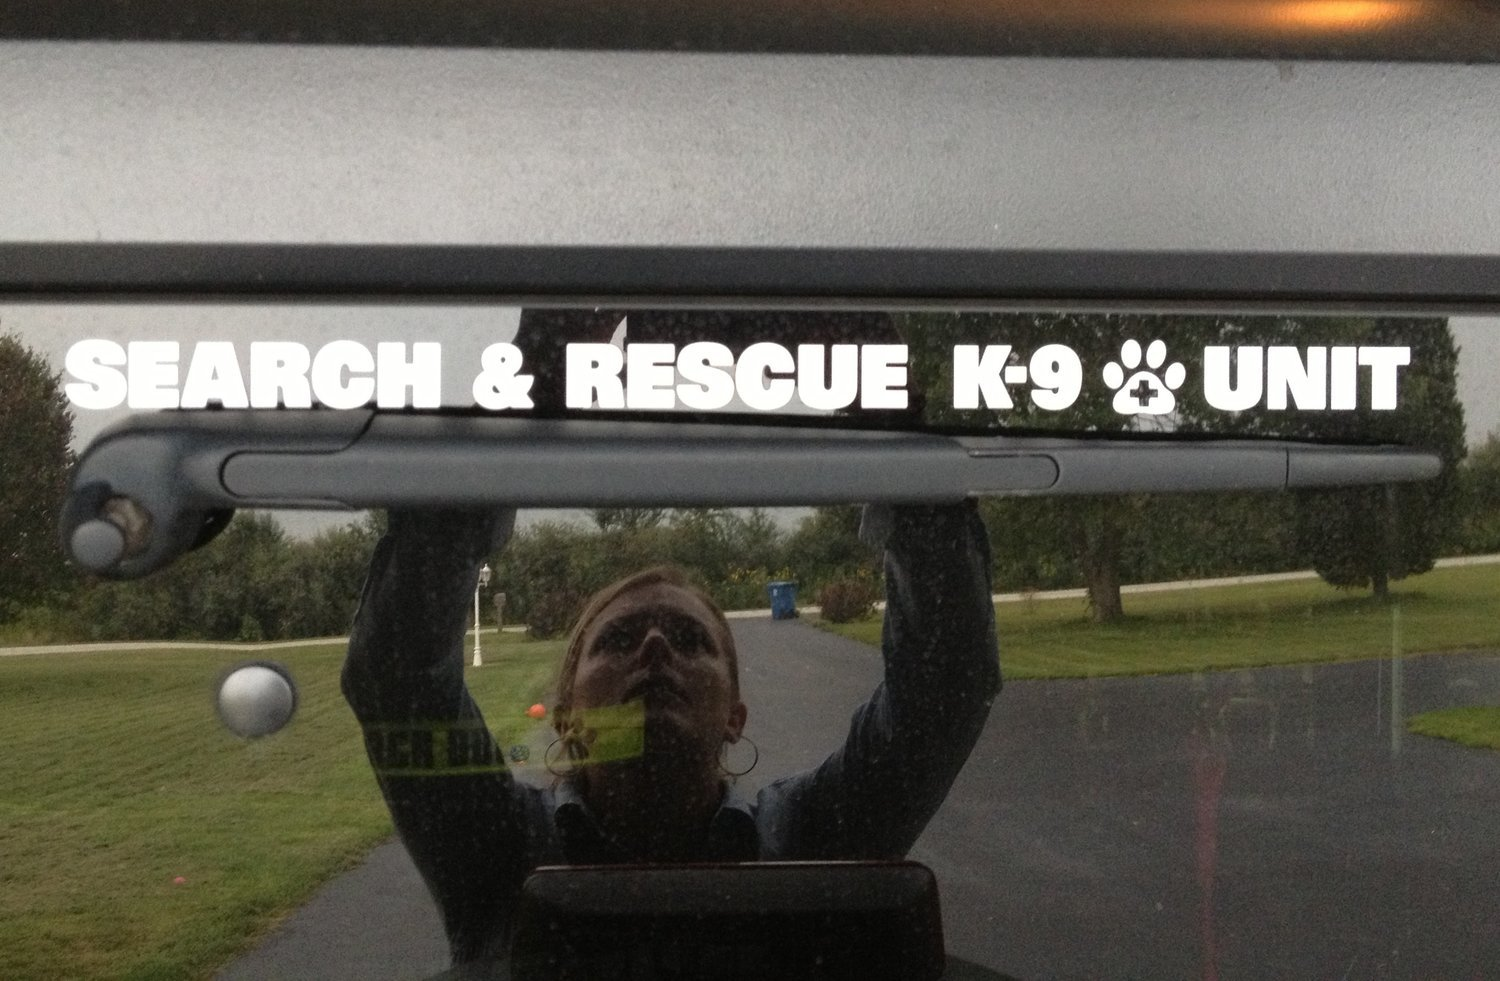 Window Decal (Reflective Die-Cut): SEARCH & RESCUE K-9 UNIT